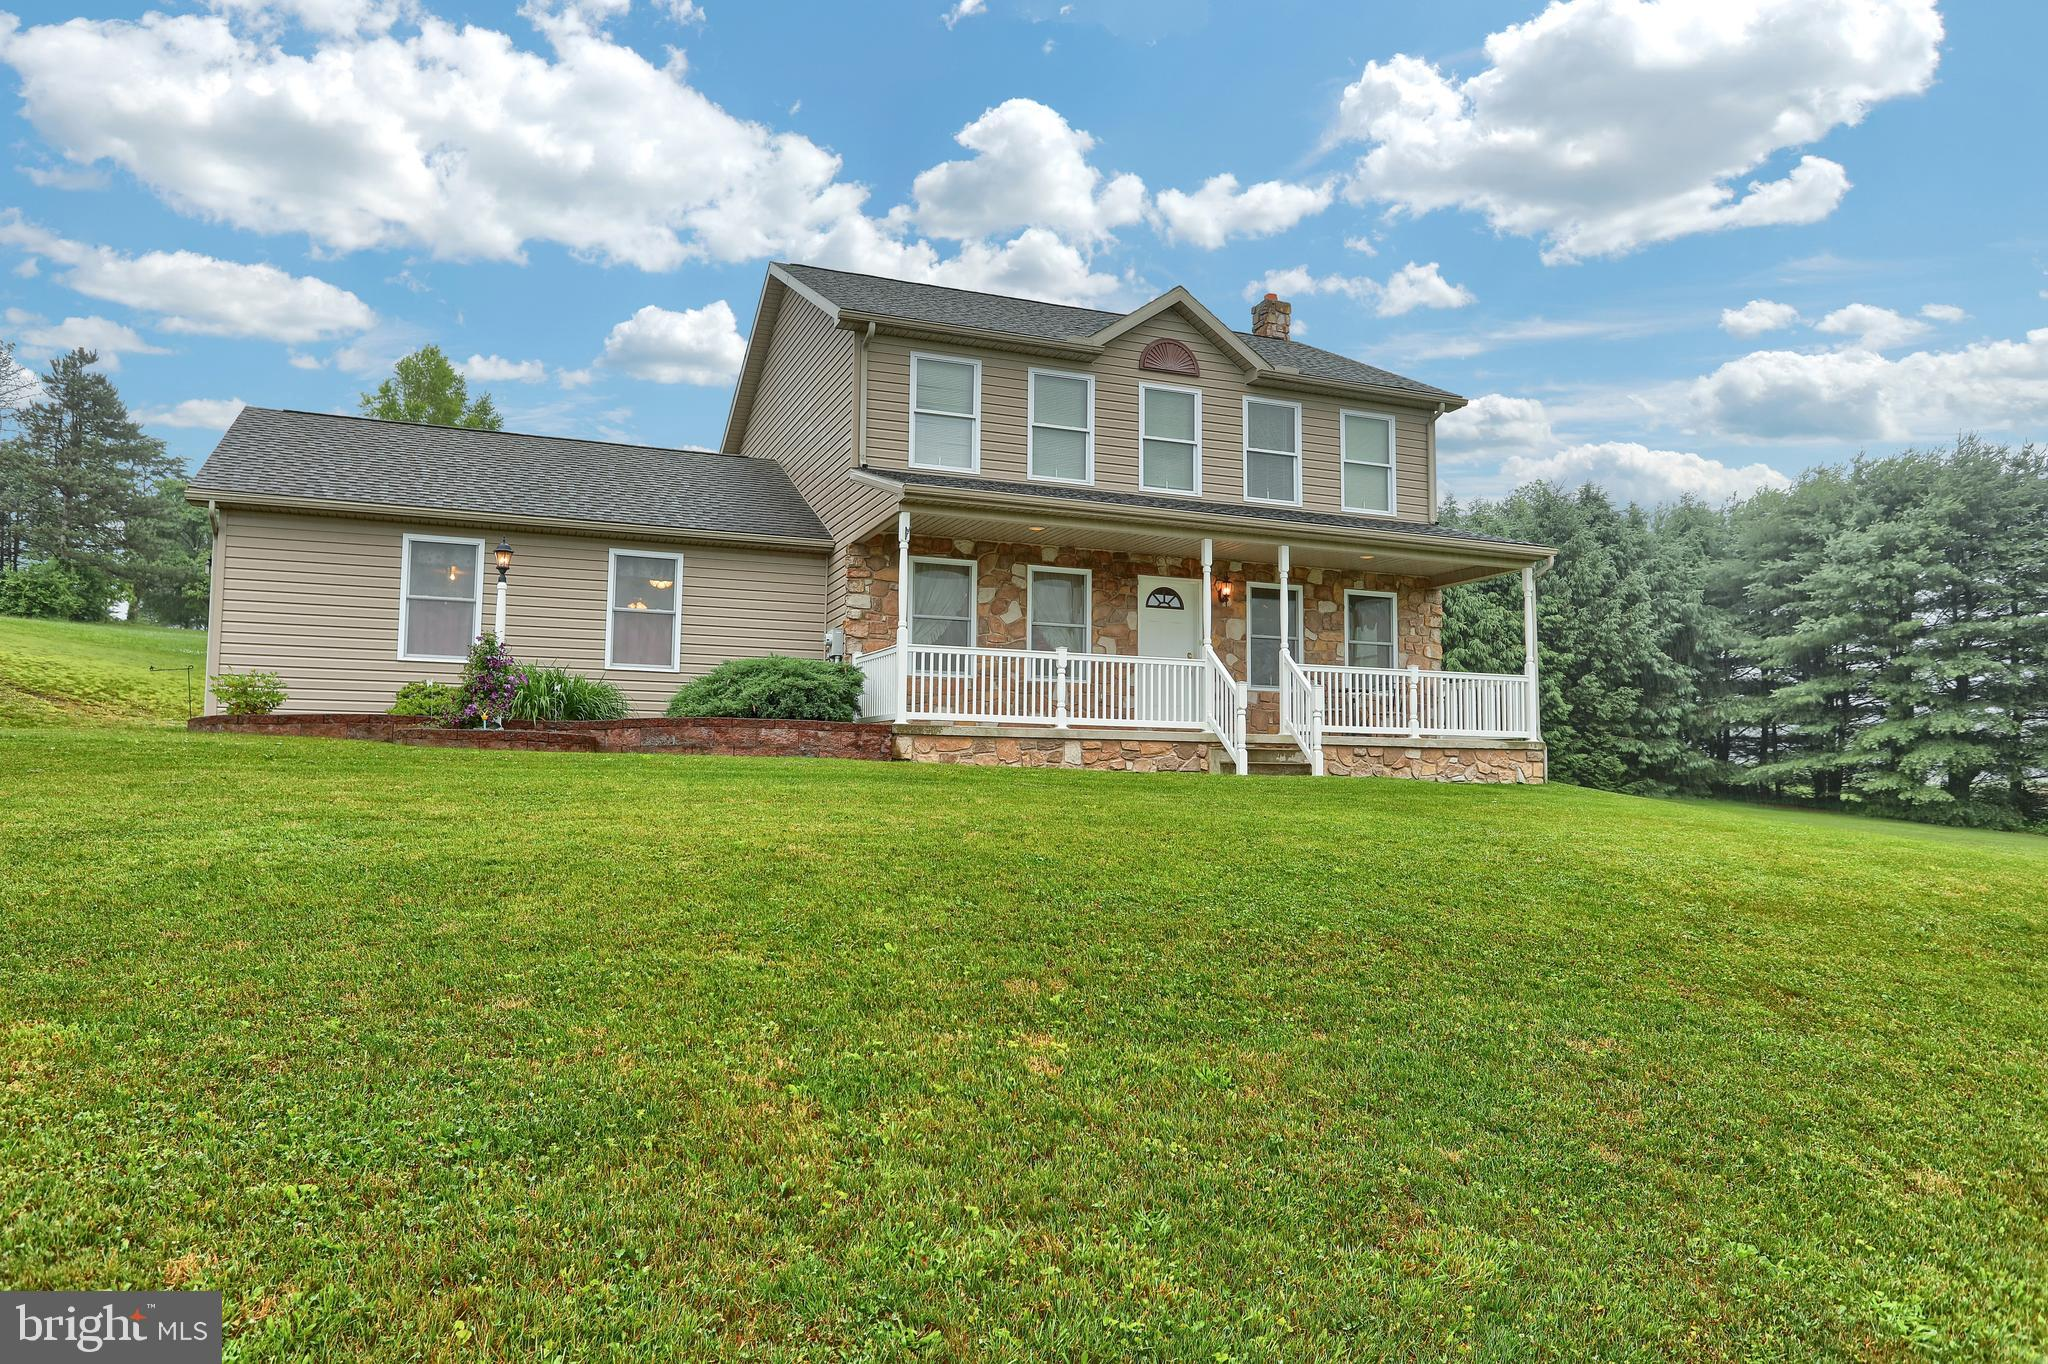 3204 VALLEY ROAD, MARYSVILLE, PA 17053